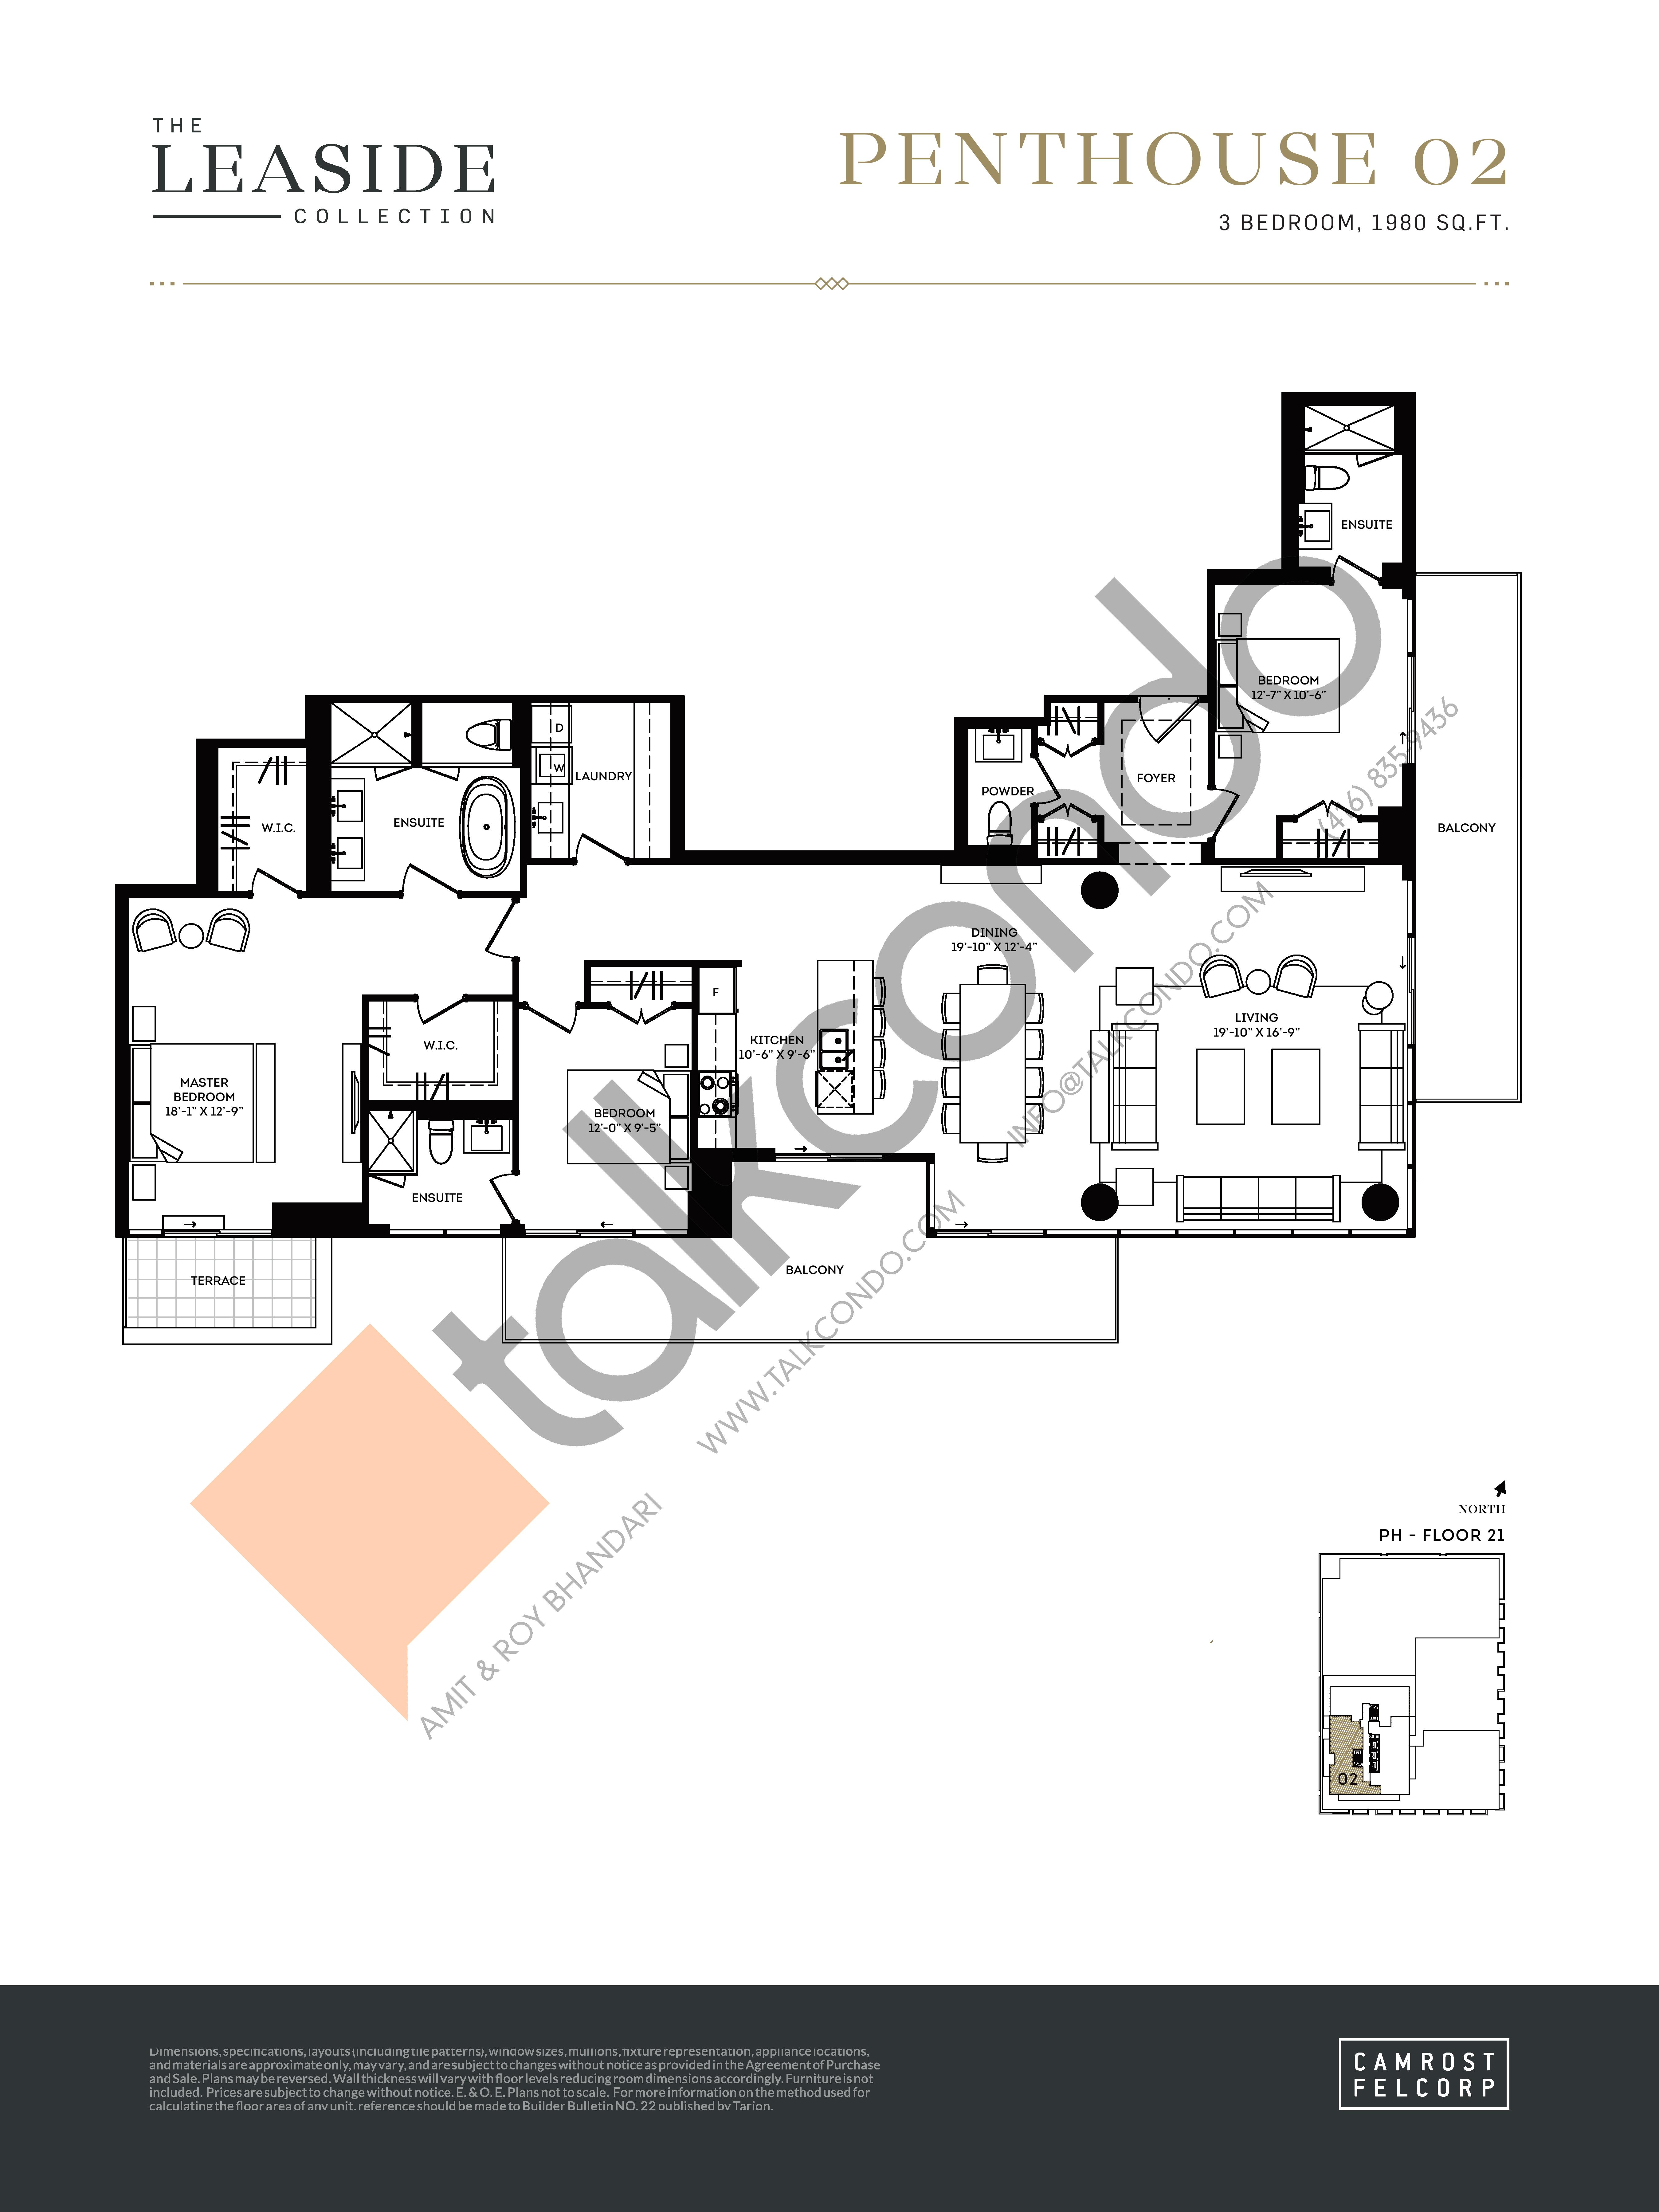 Penthouse 02 (The Leaside Collection) Floor Plan at Upper East Village Condos - 1980 sq.ft